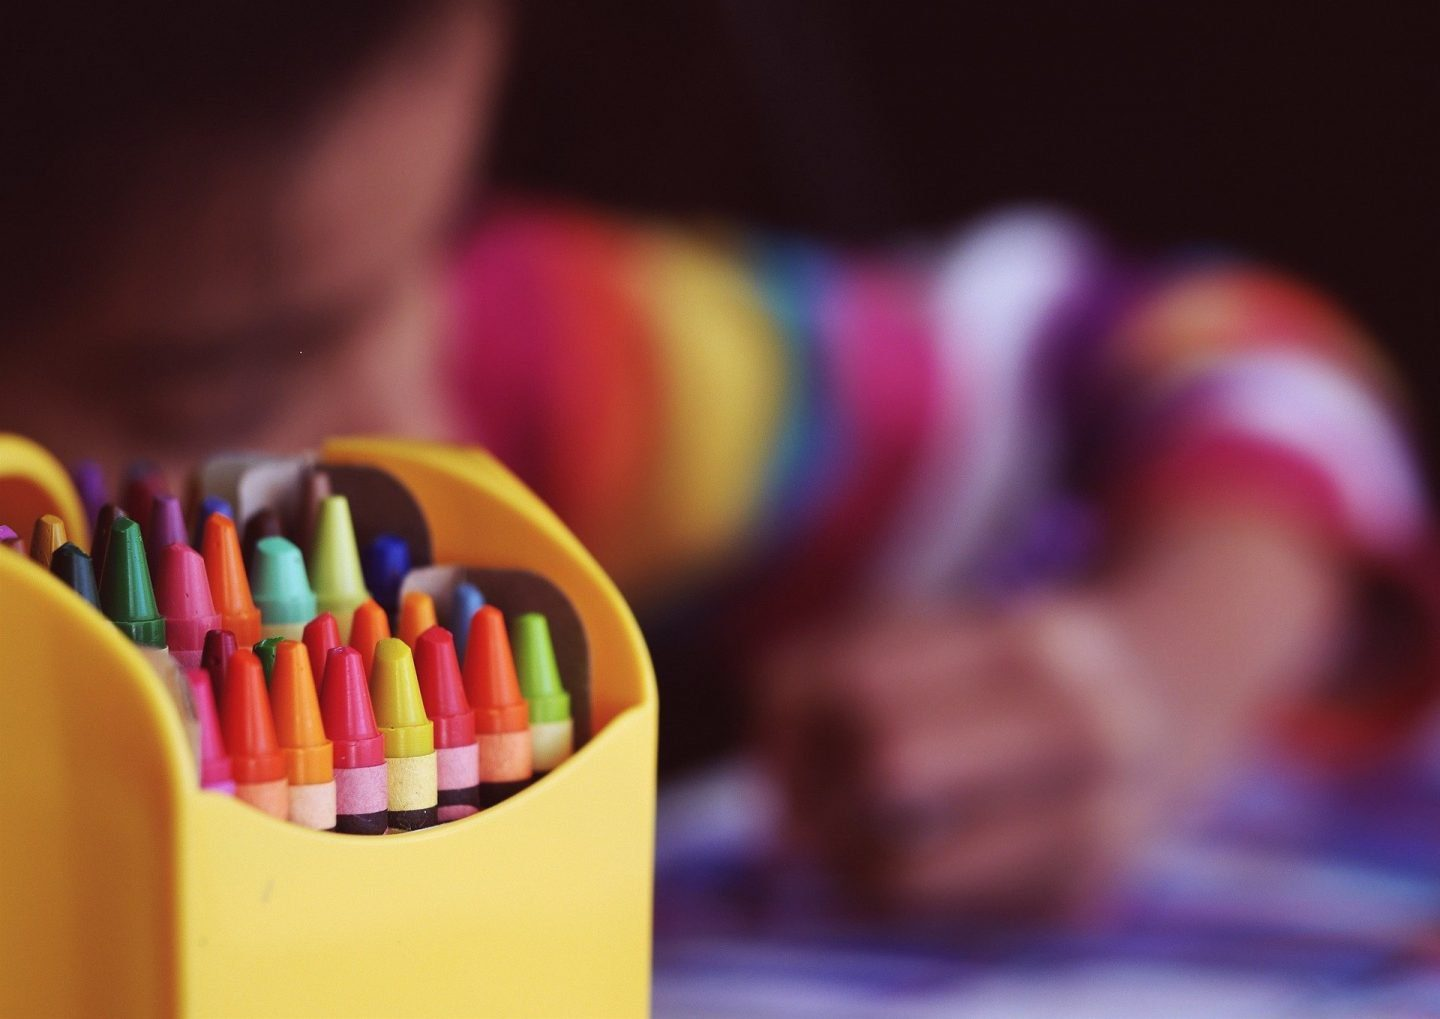 a box of crayons, with an out of focus child behind